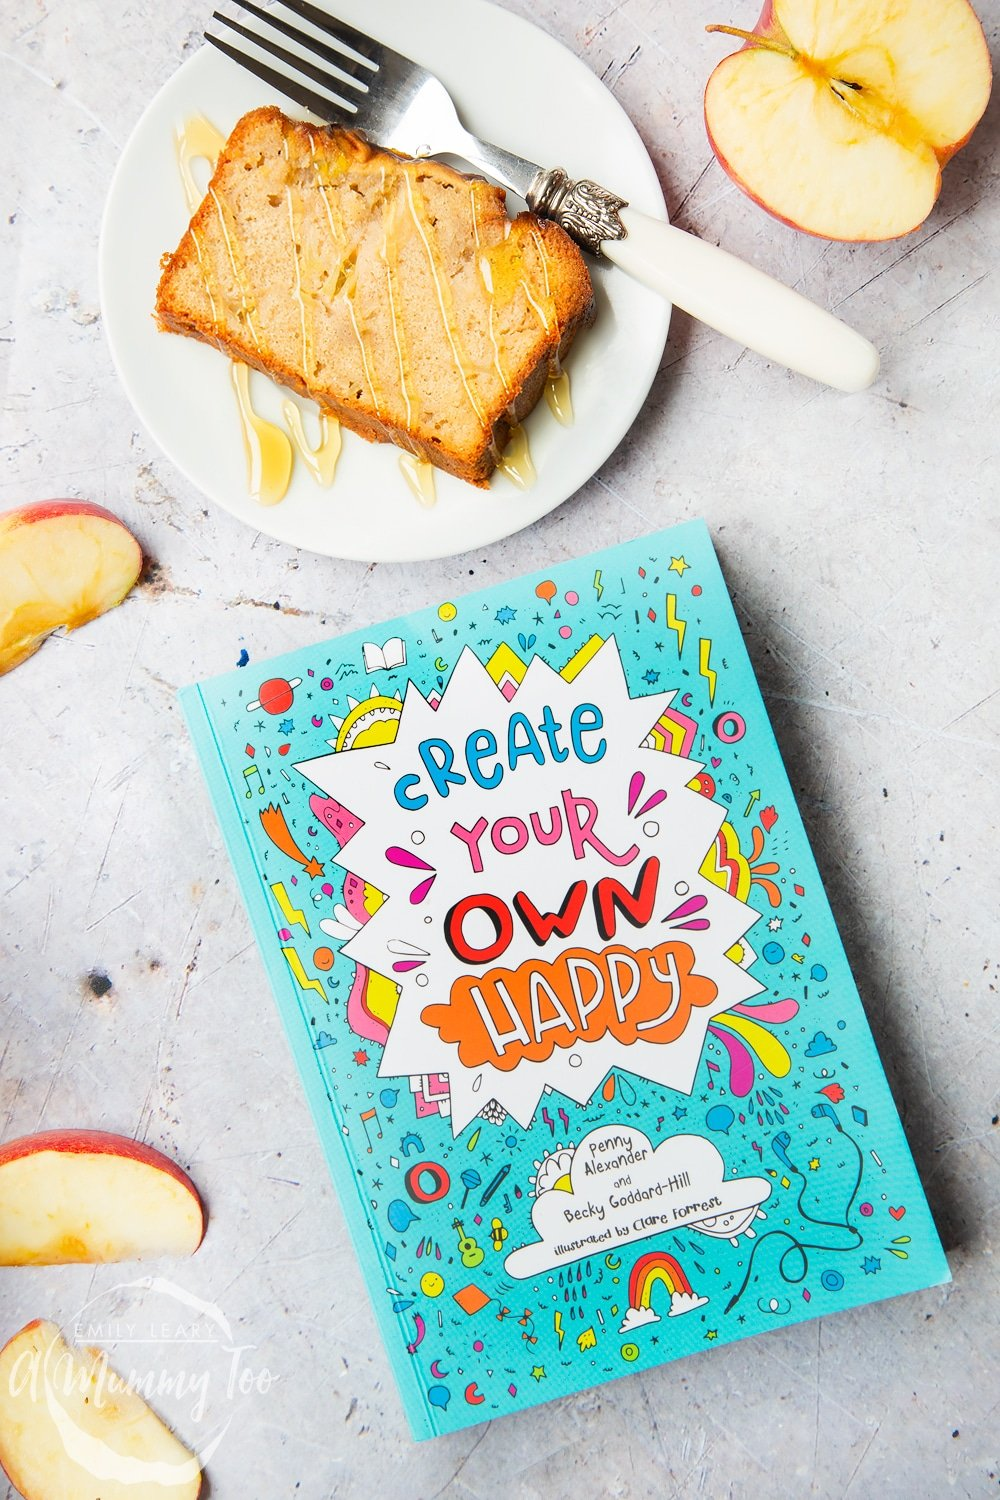 This apple, cinnamon and honey cake recipe was inspired by the Create Your Own Happy book